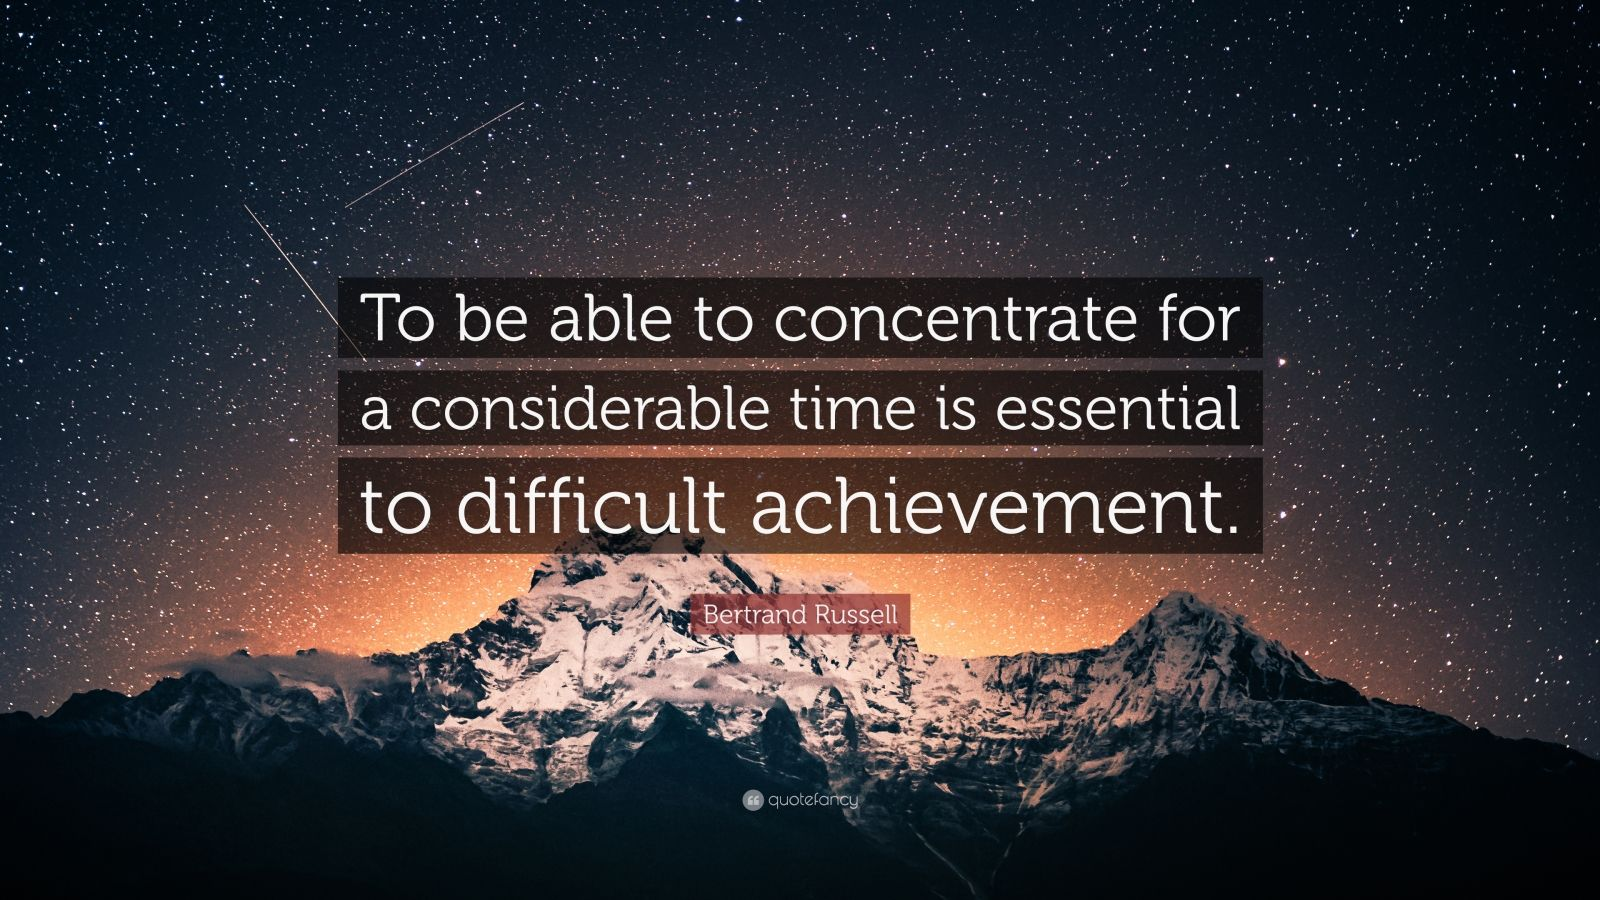 """Bertrand Russell Quote: """"To be able to concentrate for a considerable time is essential to difficult achievement."""""""